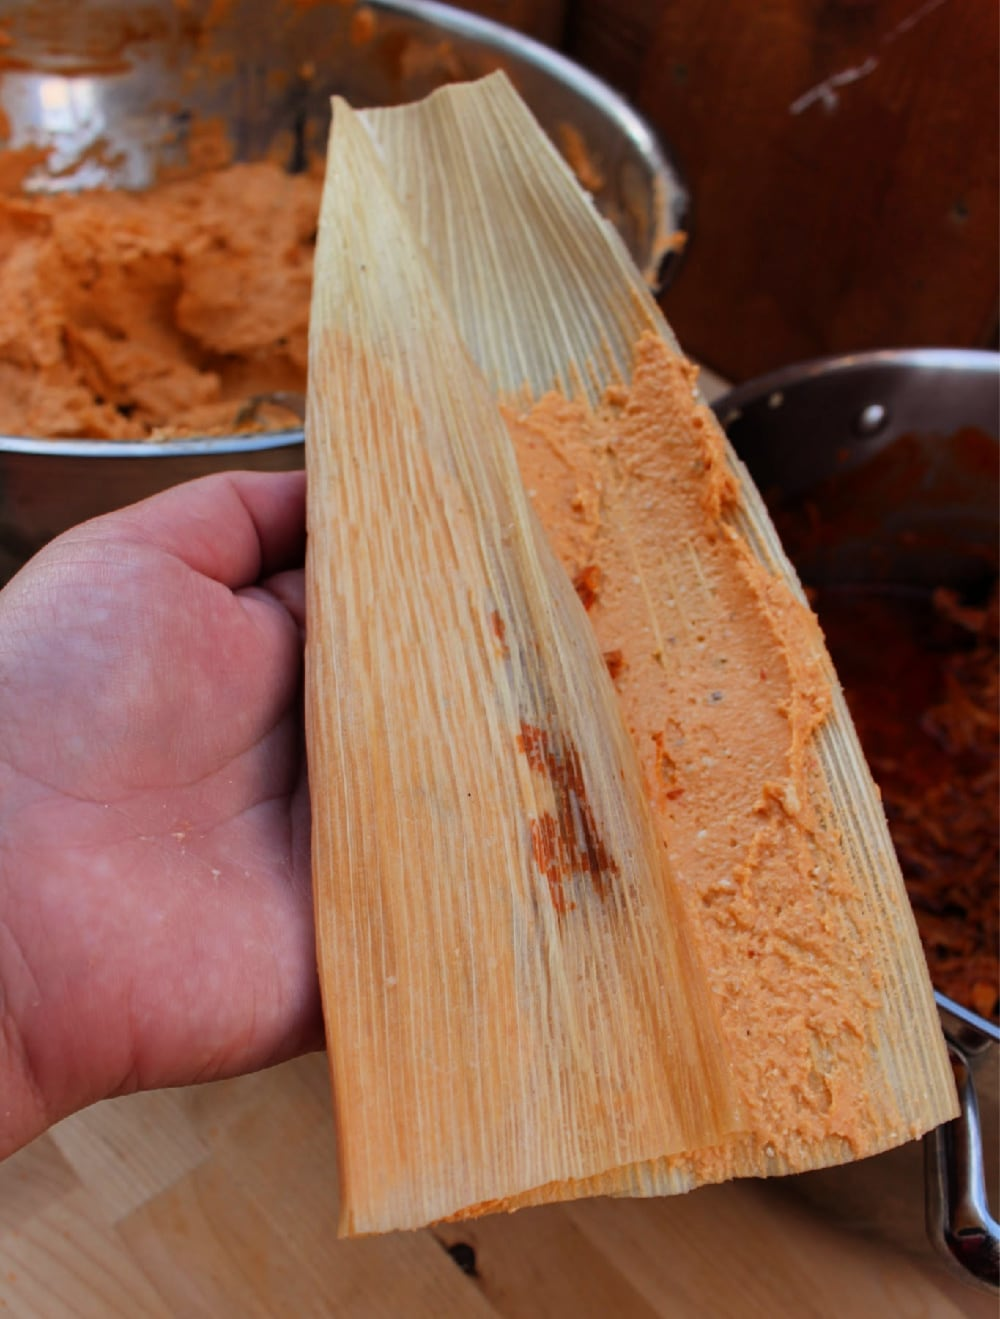 Hand holding a corn husk with one side of the husk folded in.